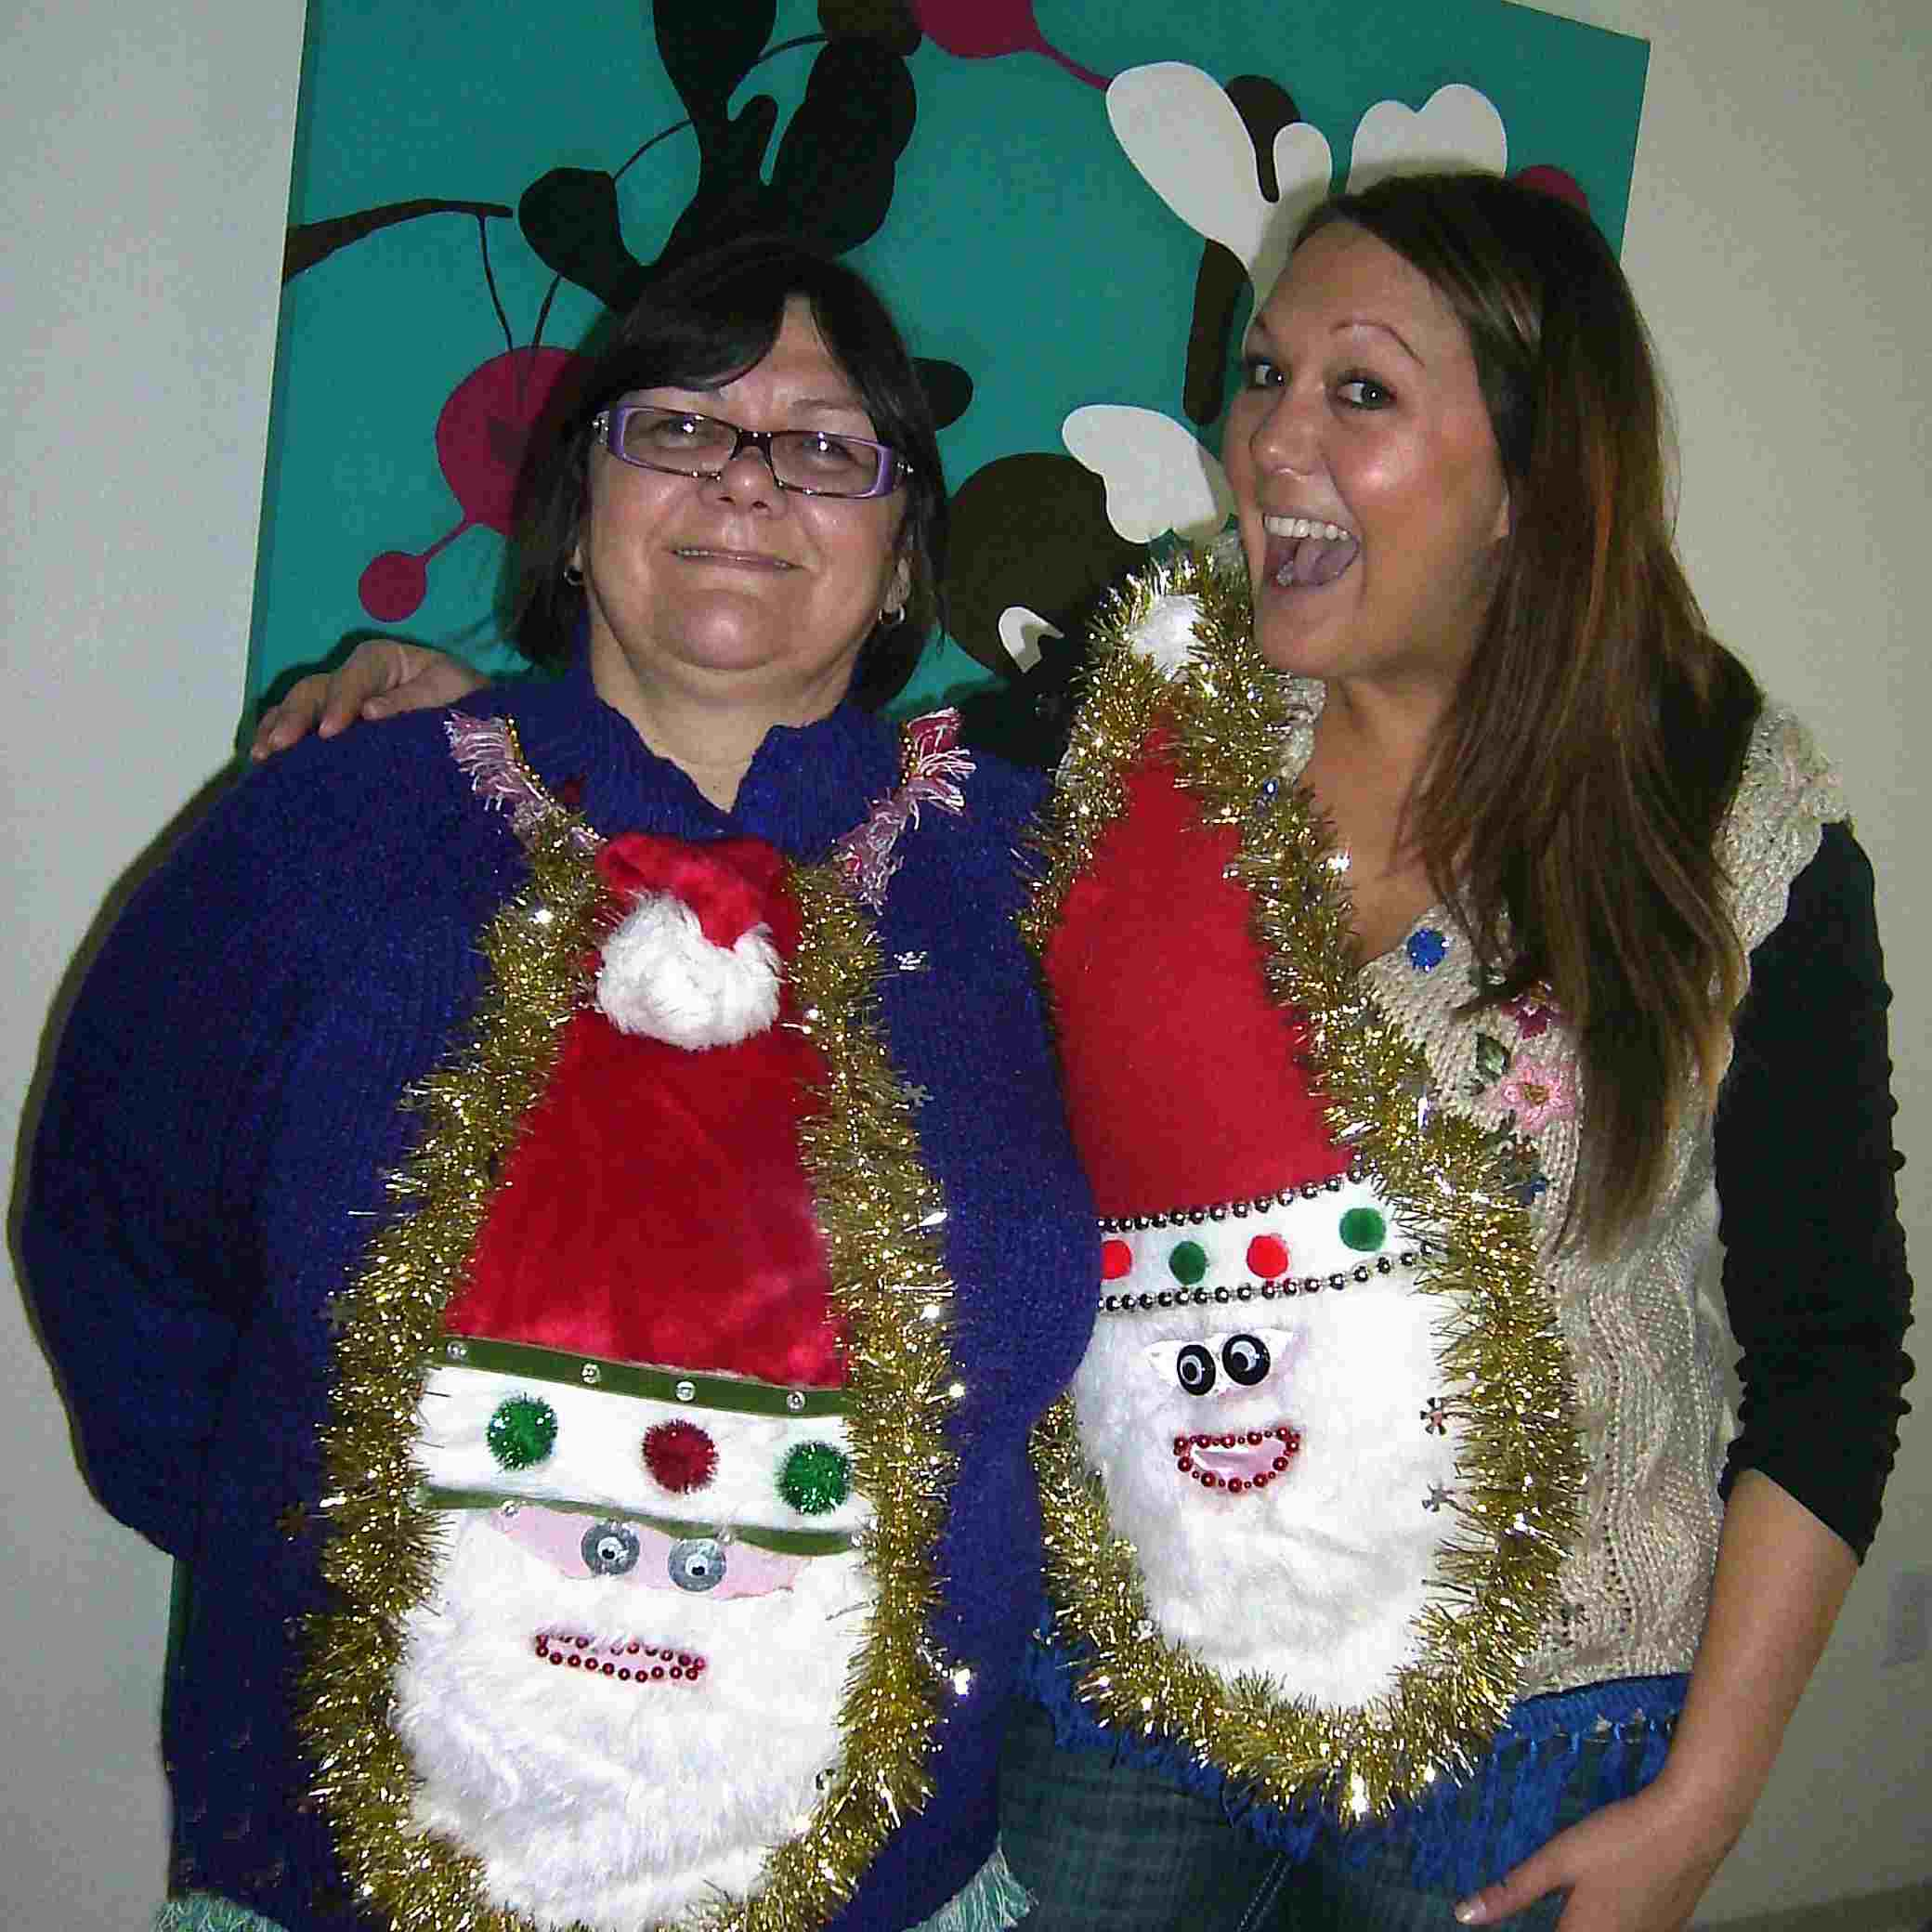 christmas costume ideas source tacky christmas party costume ideas www topsimages com